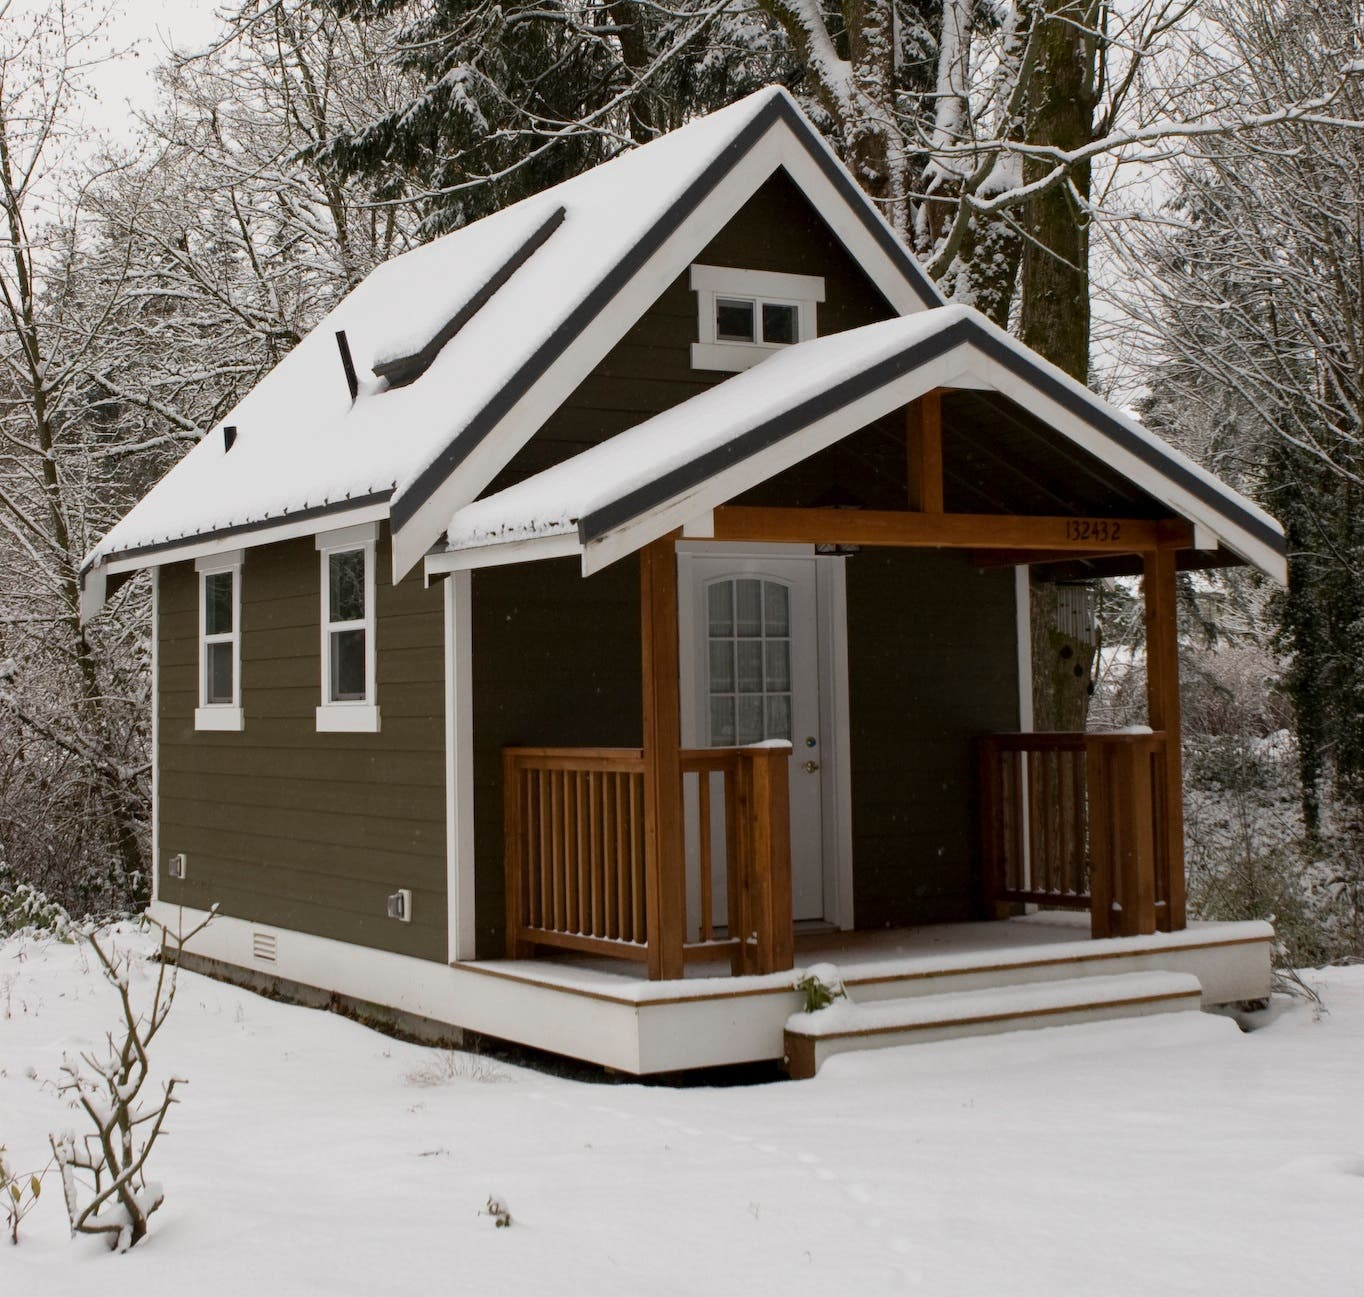 Tiny house articles Tiny house blueprints free